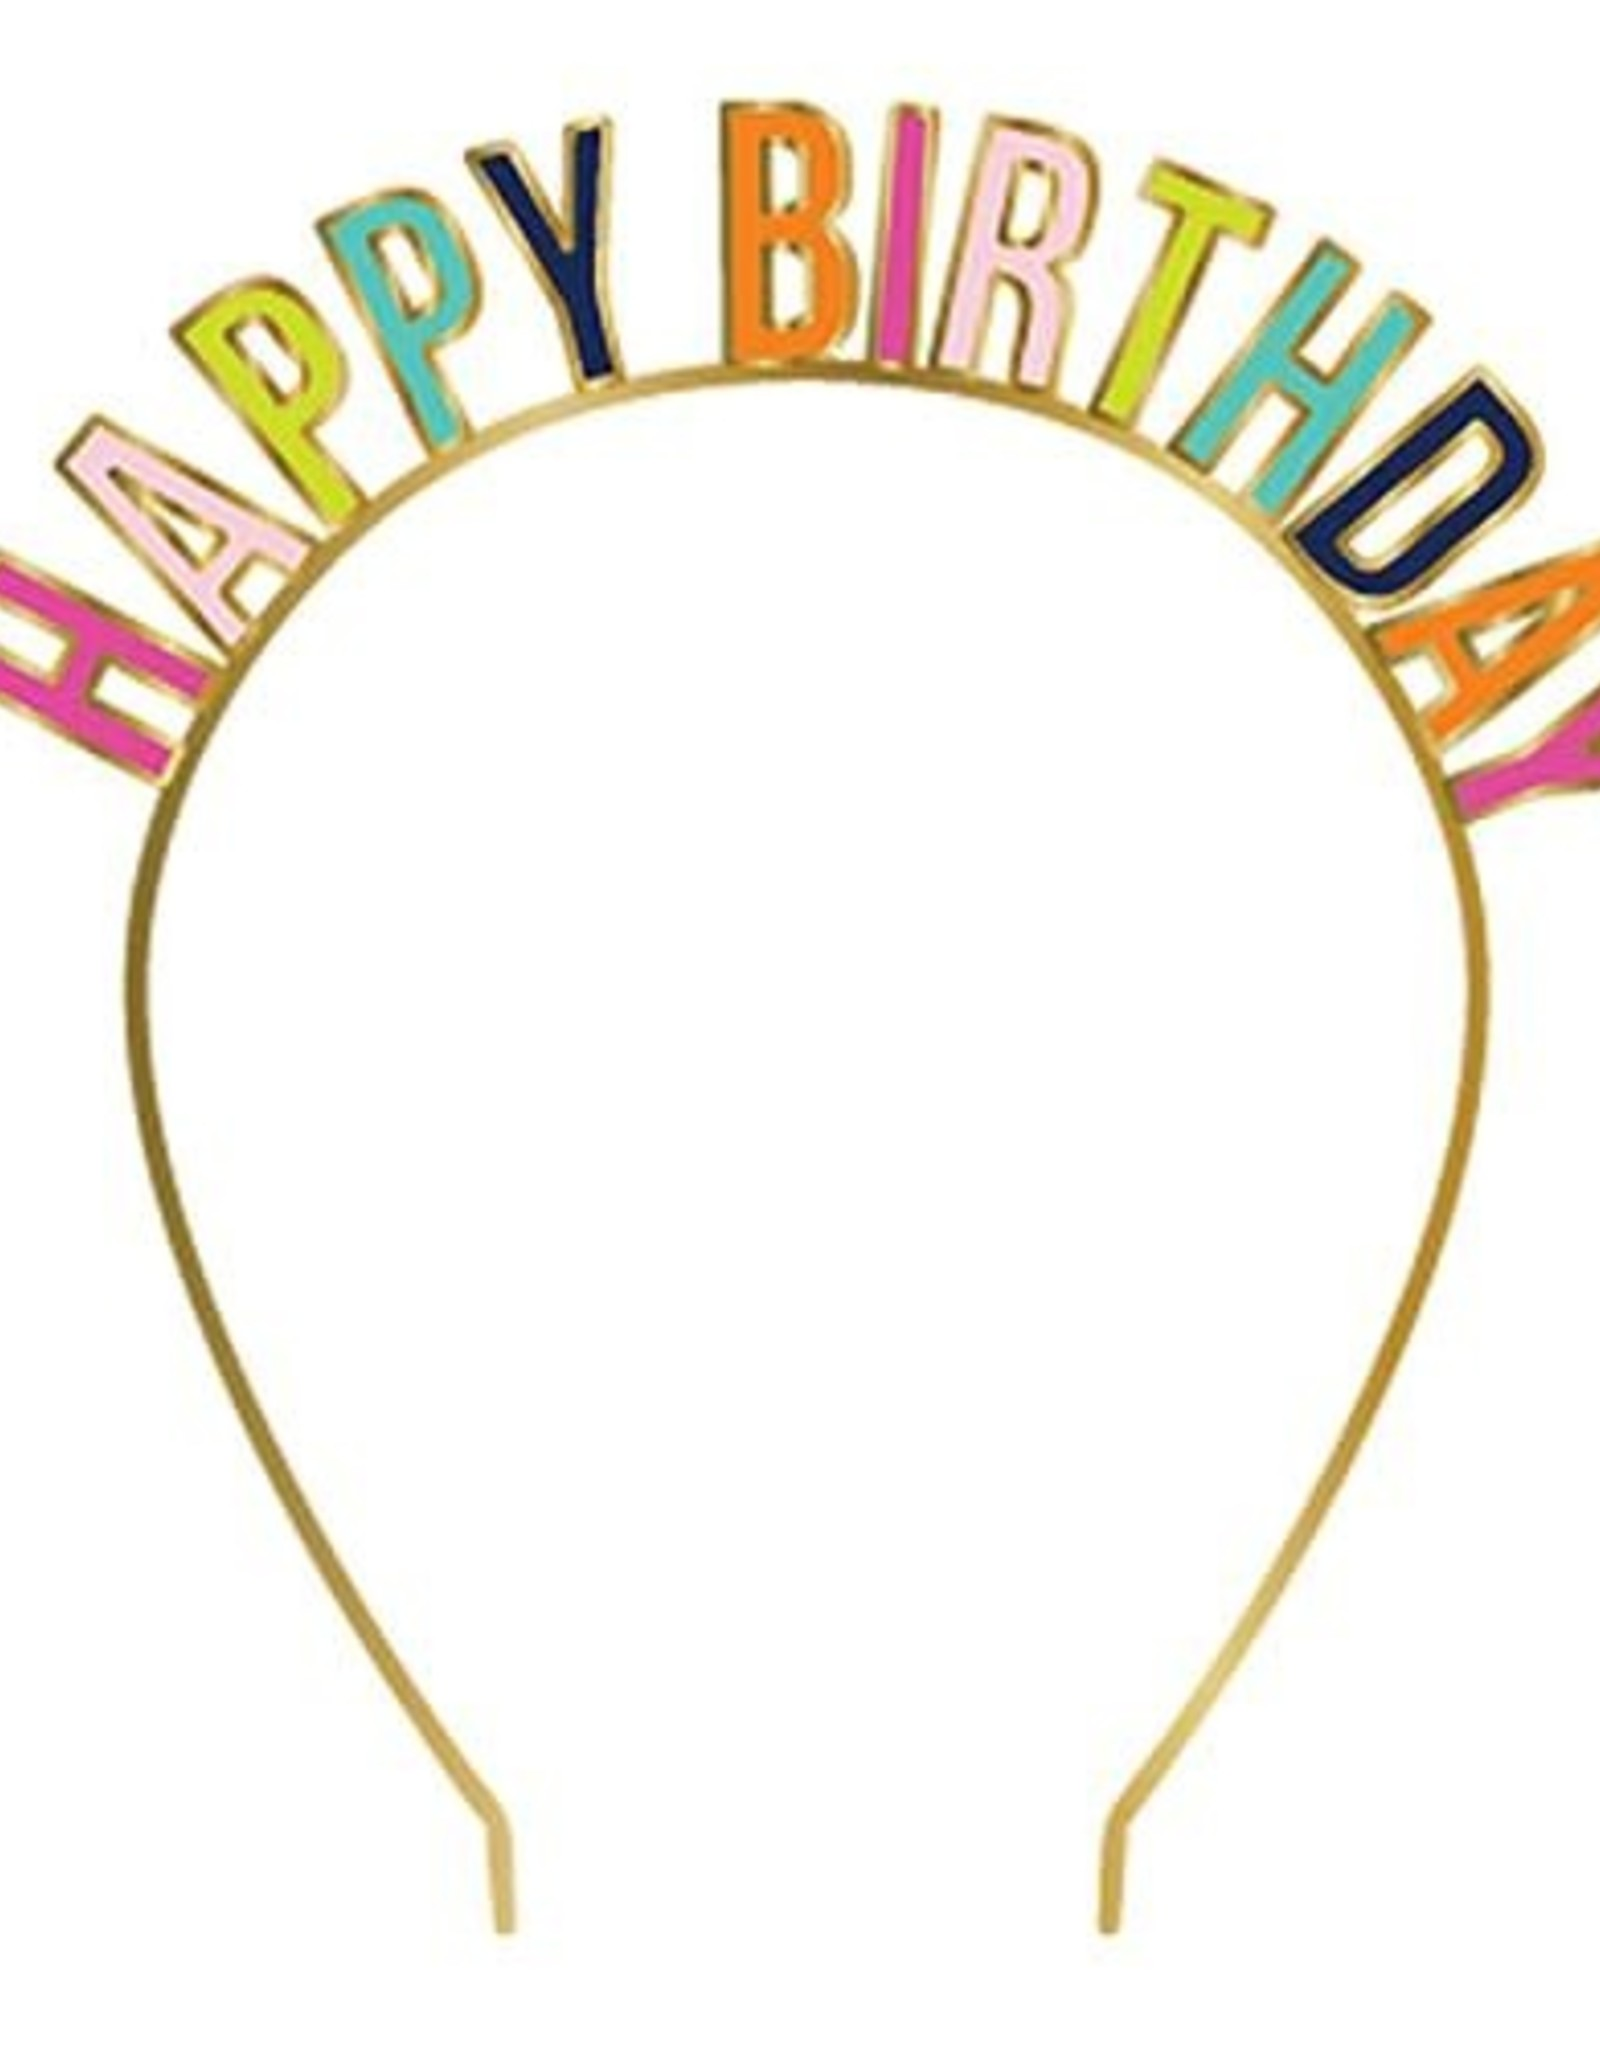 Creative Brands Headband - Happy Birthday